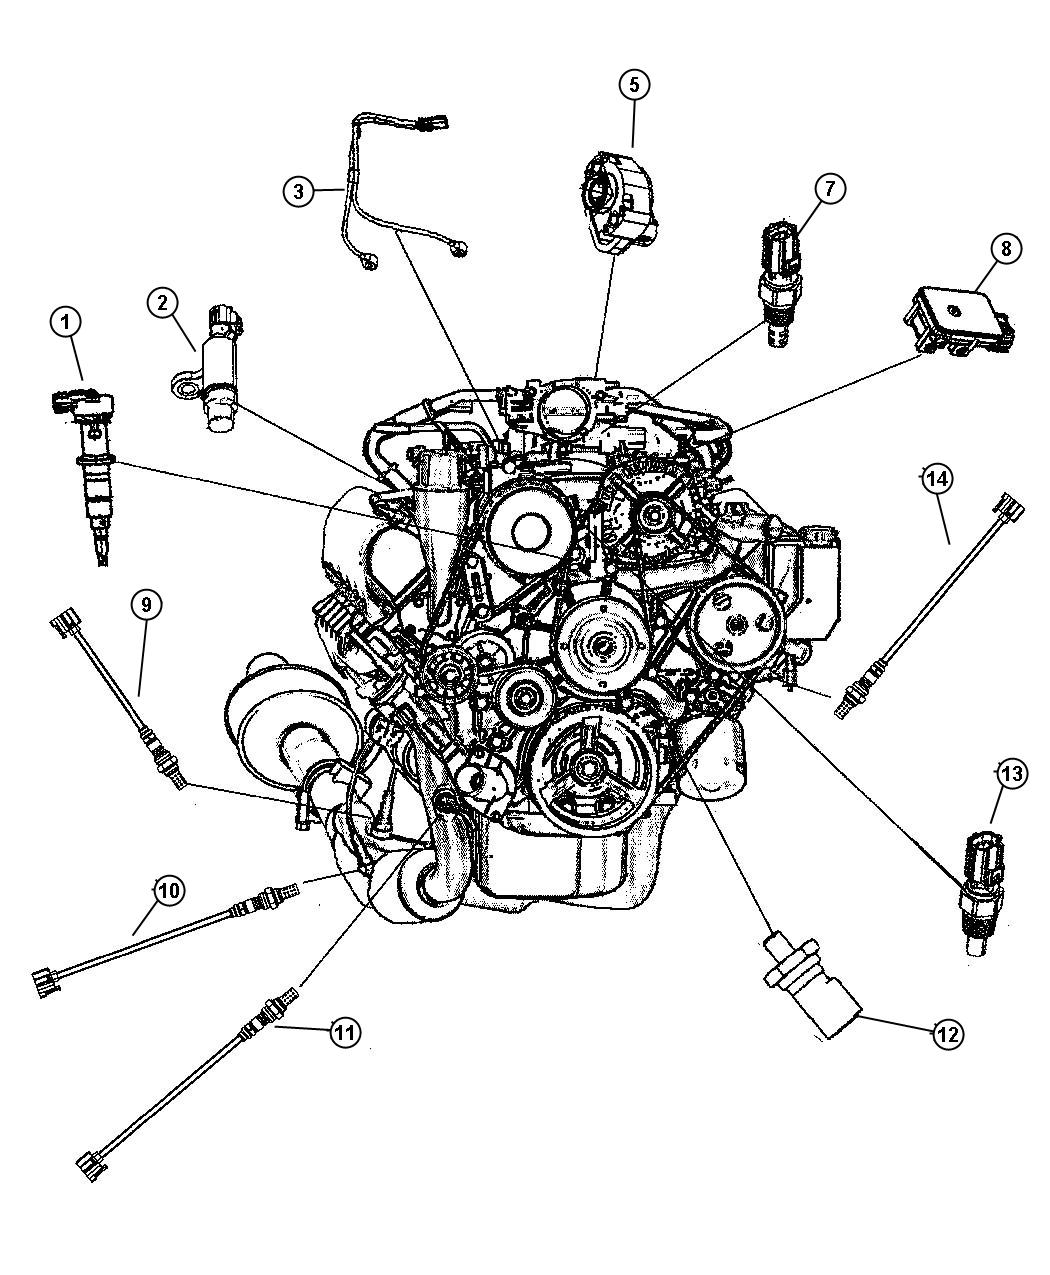 Chrysler l engine wiring diagram get free image about